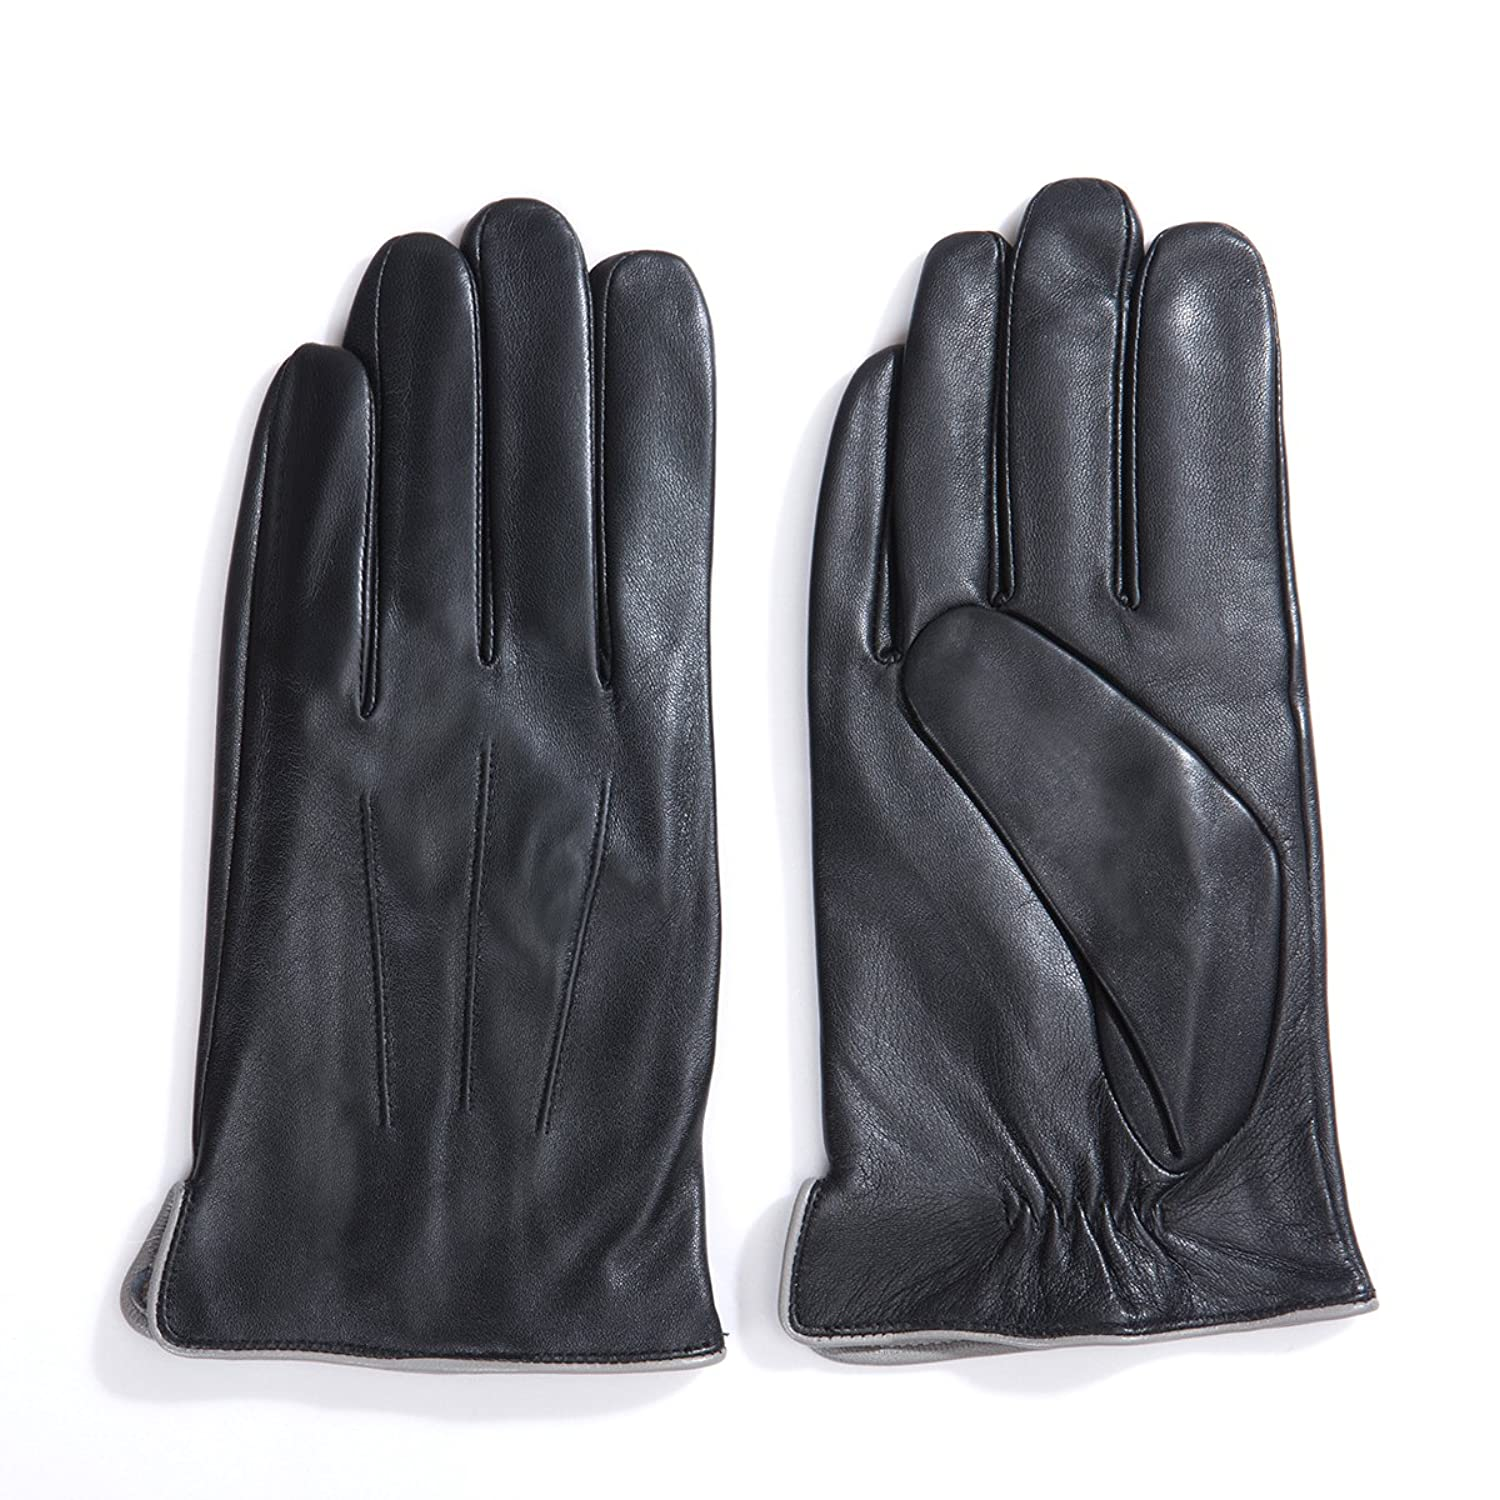 Mens leather gloves size 2x - Matsu Luxury Men Winter Warm Lambskin Leather Gloves M1006 S Black Long Fleece Or Cashmere Lining At Amazon Men S Clothing Store